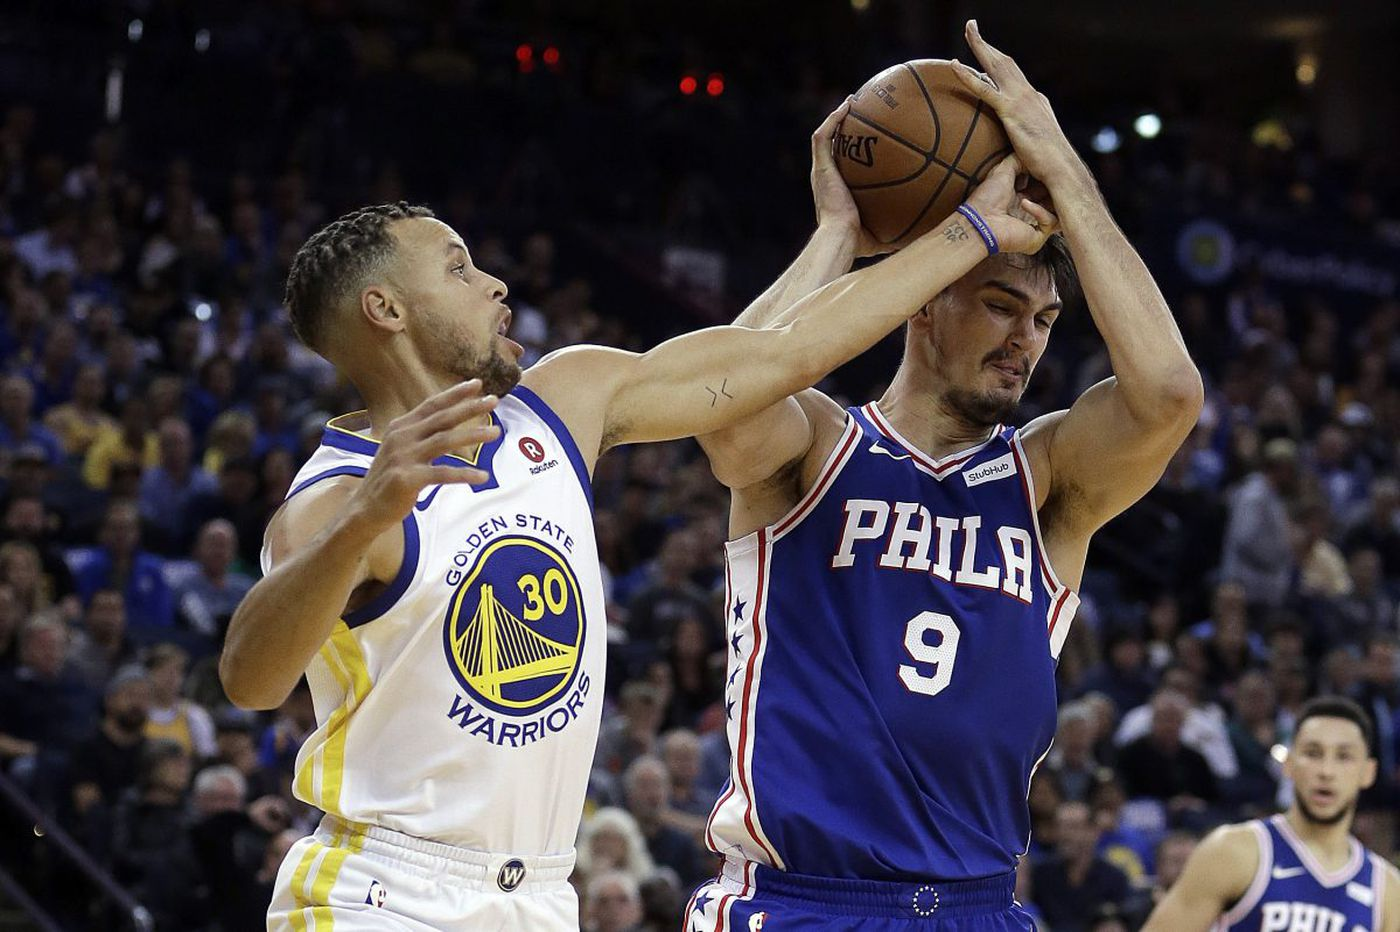 Sixers-Warriors observations, 'best' and 'worst' awards: Kevin Durant, Joel Embiid, and horrid transition defense